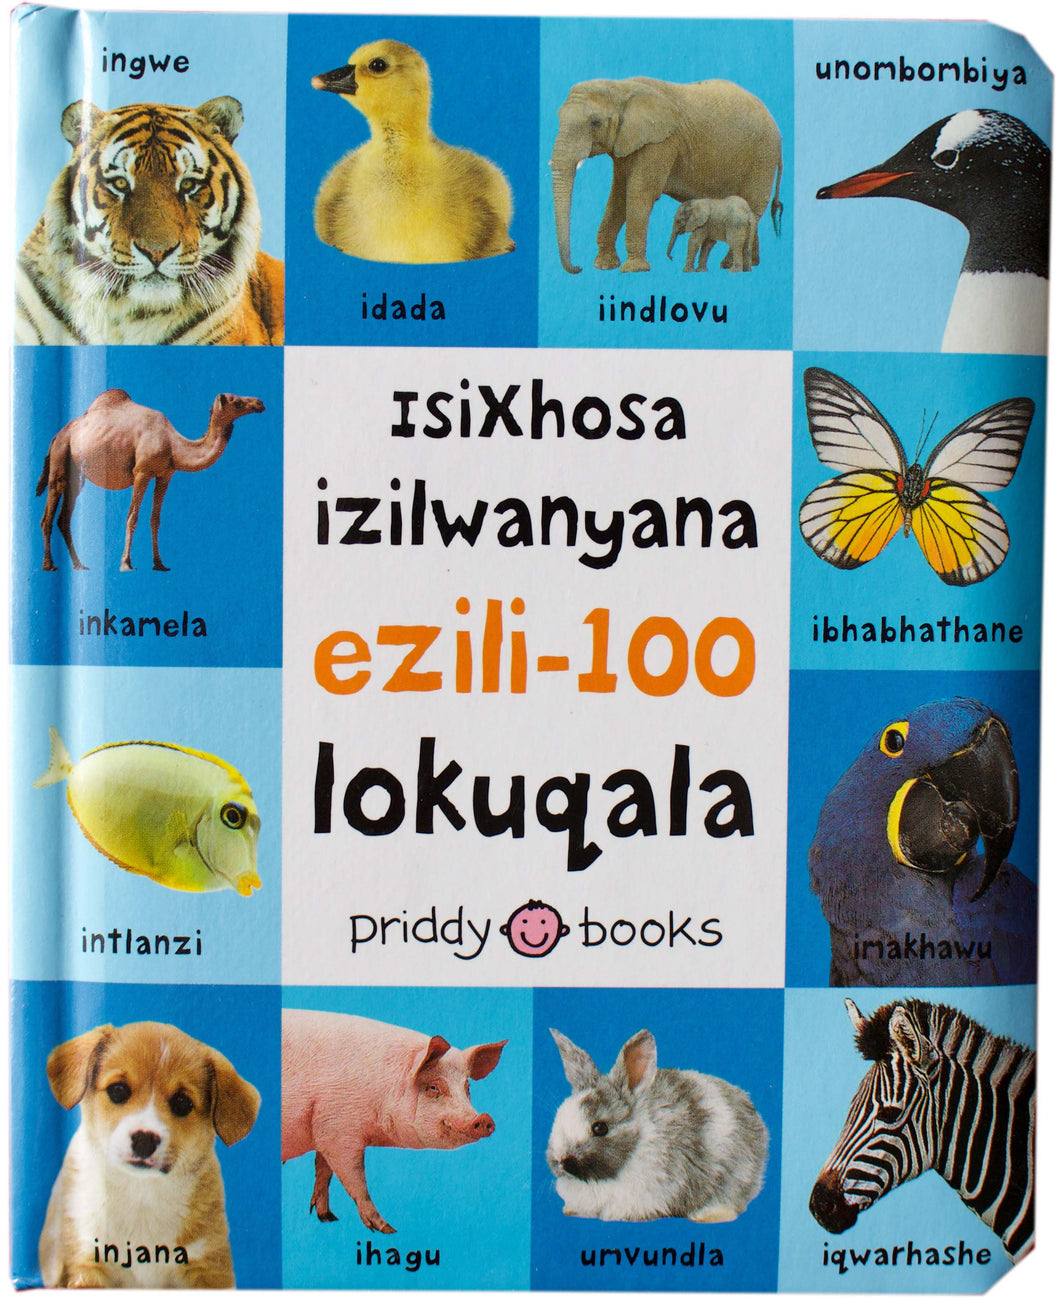 IsiXhosa First 100 Animals Book